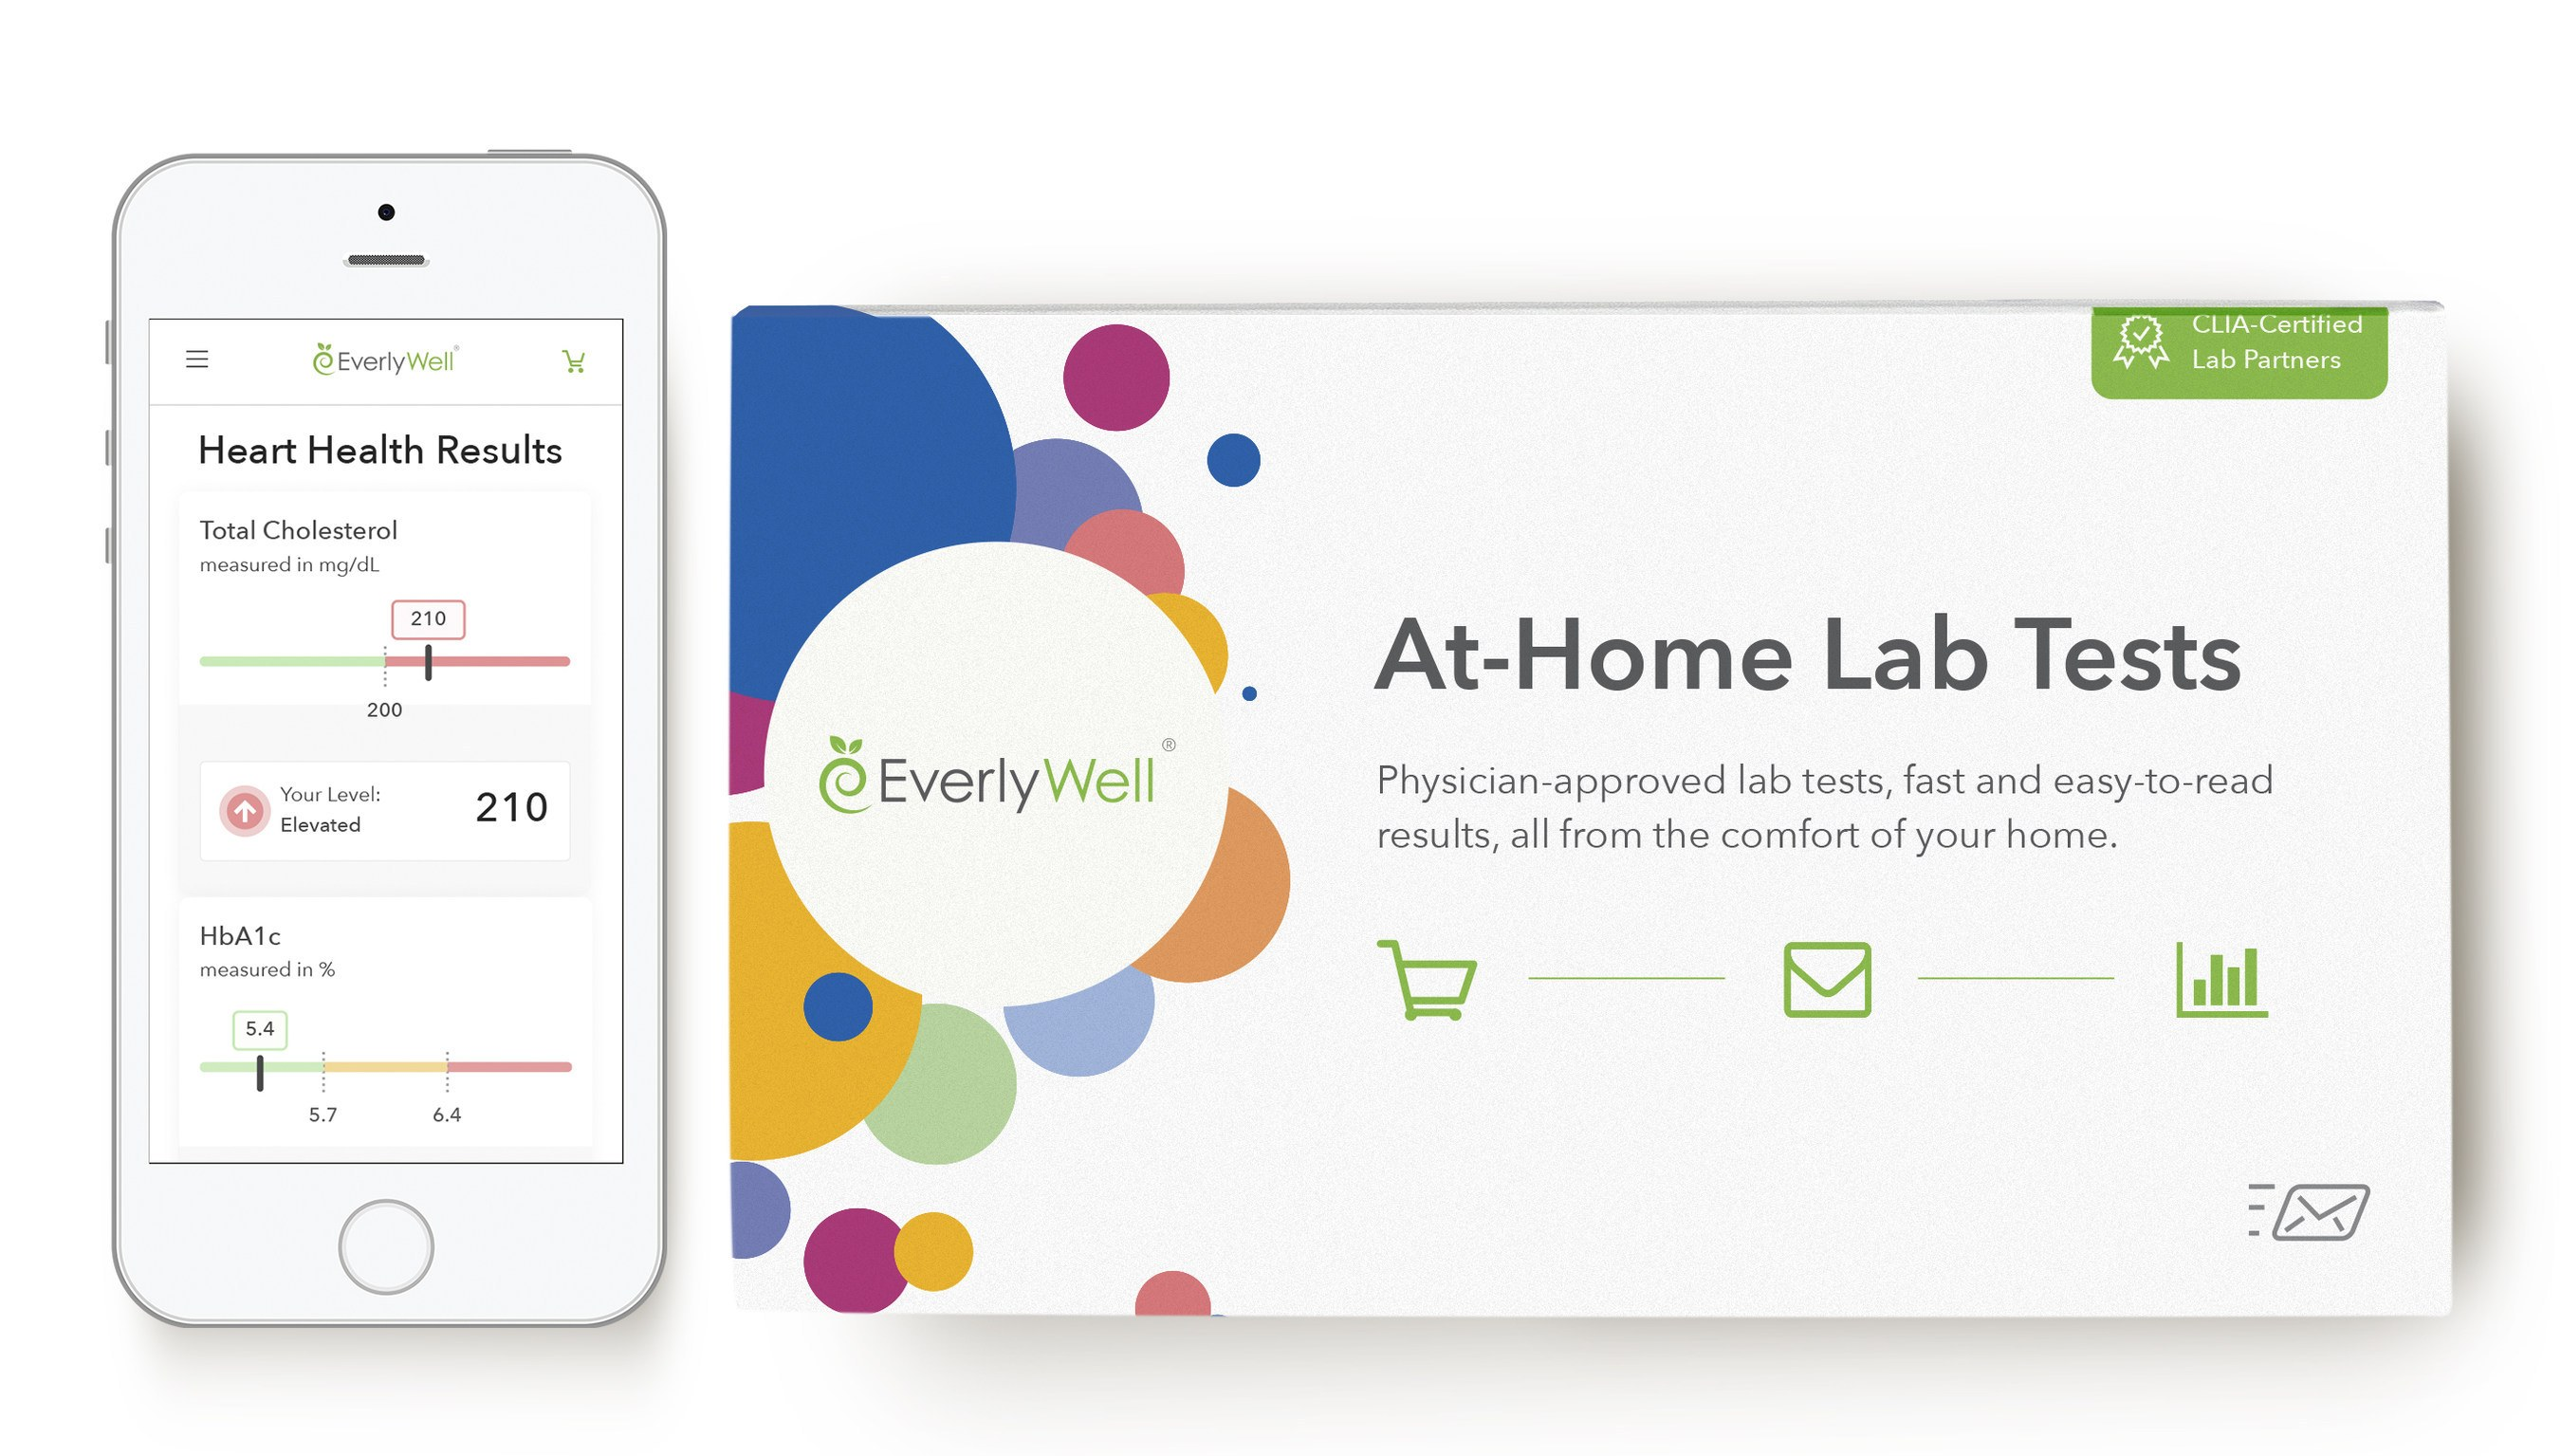 EverlyWell Raises $50M to Scale In-Home Digital Lab Testing Platform